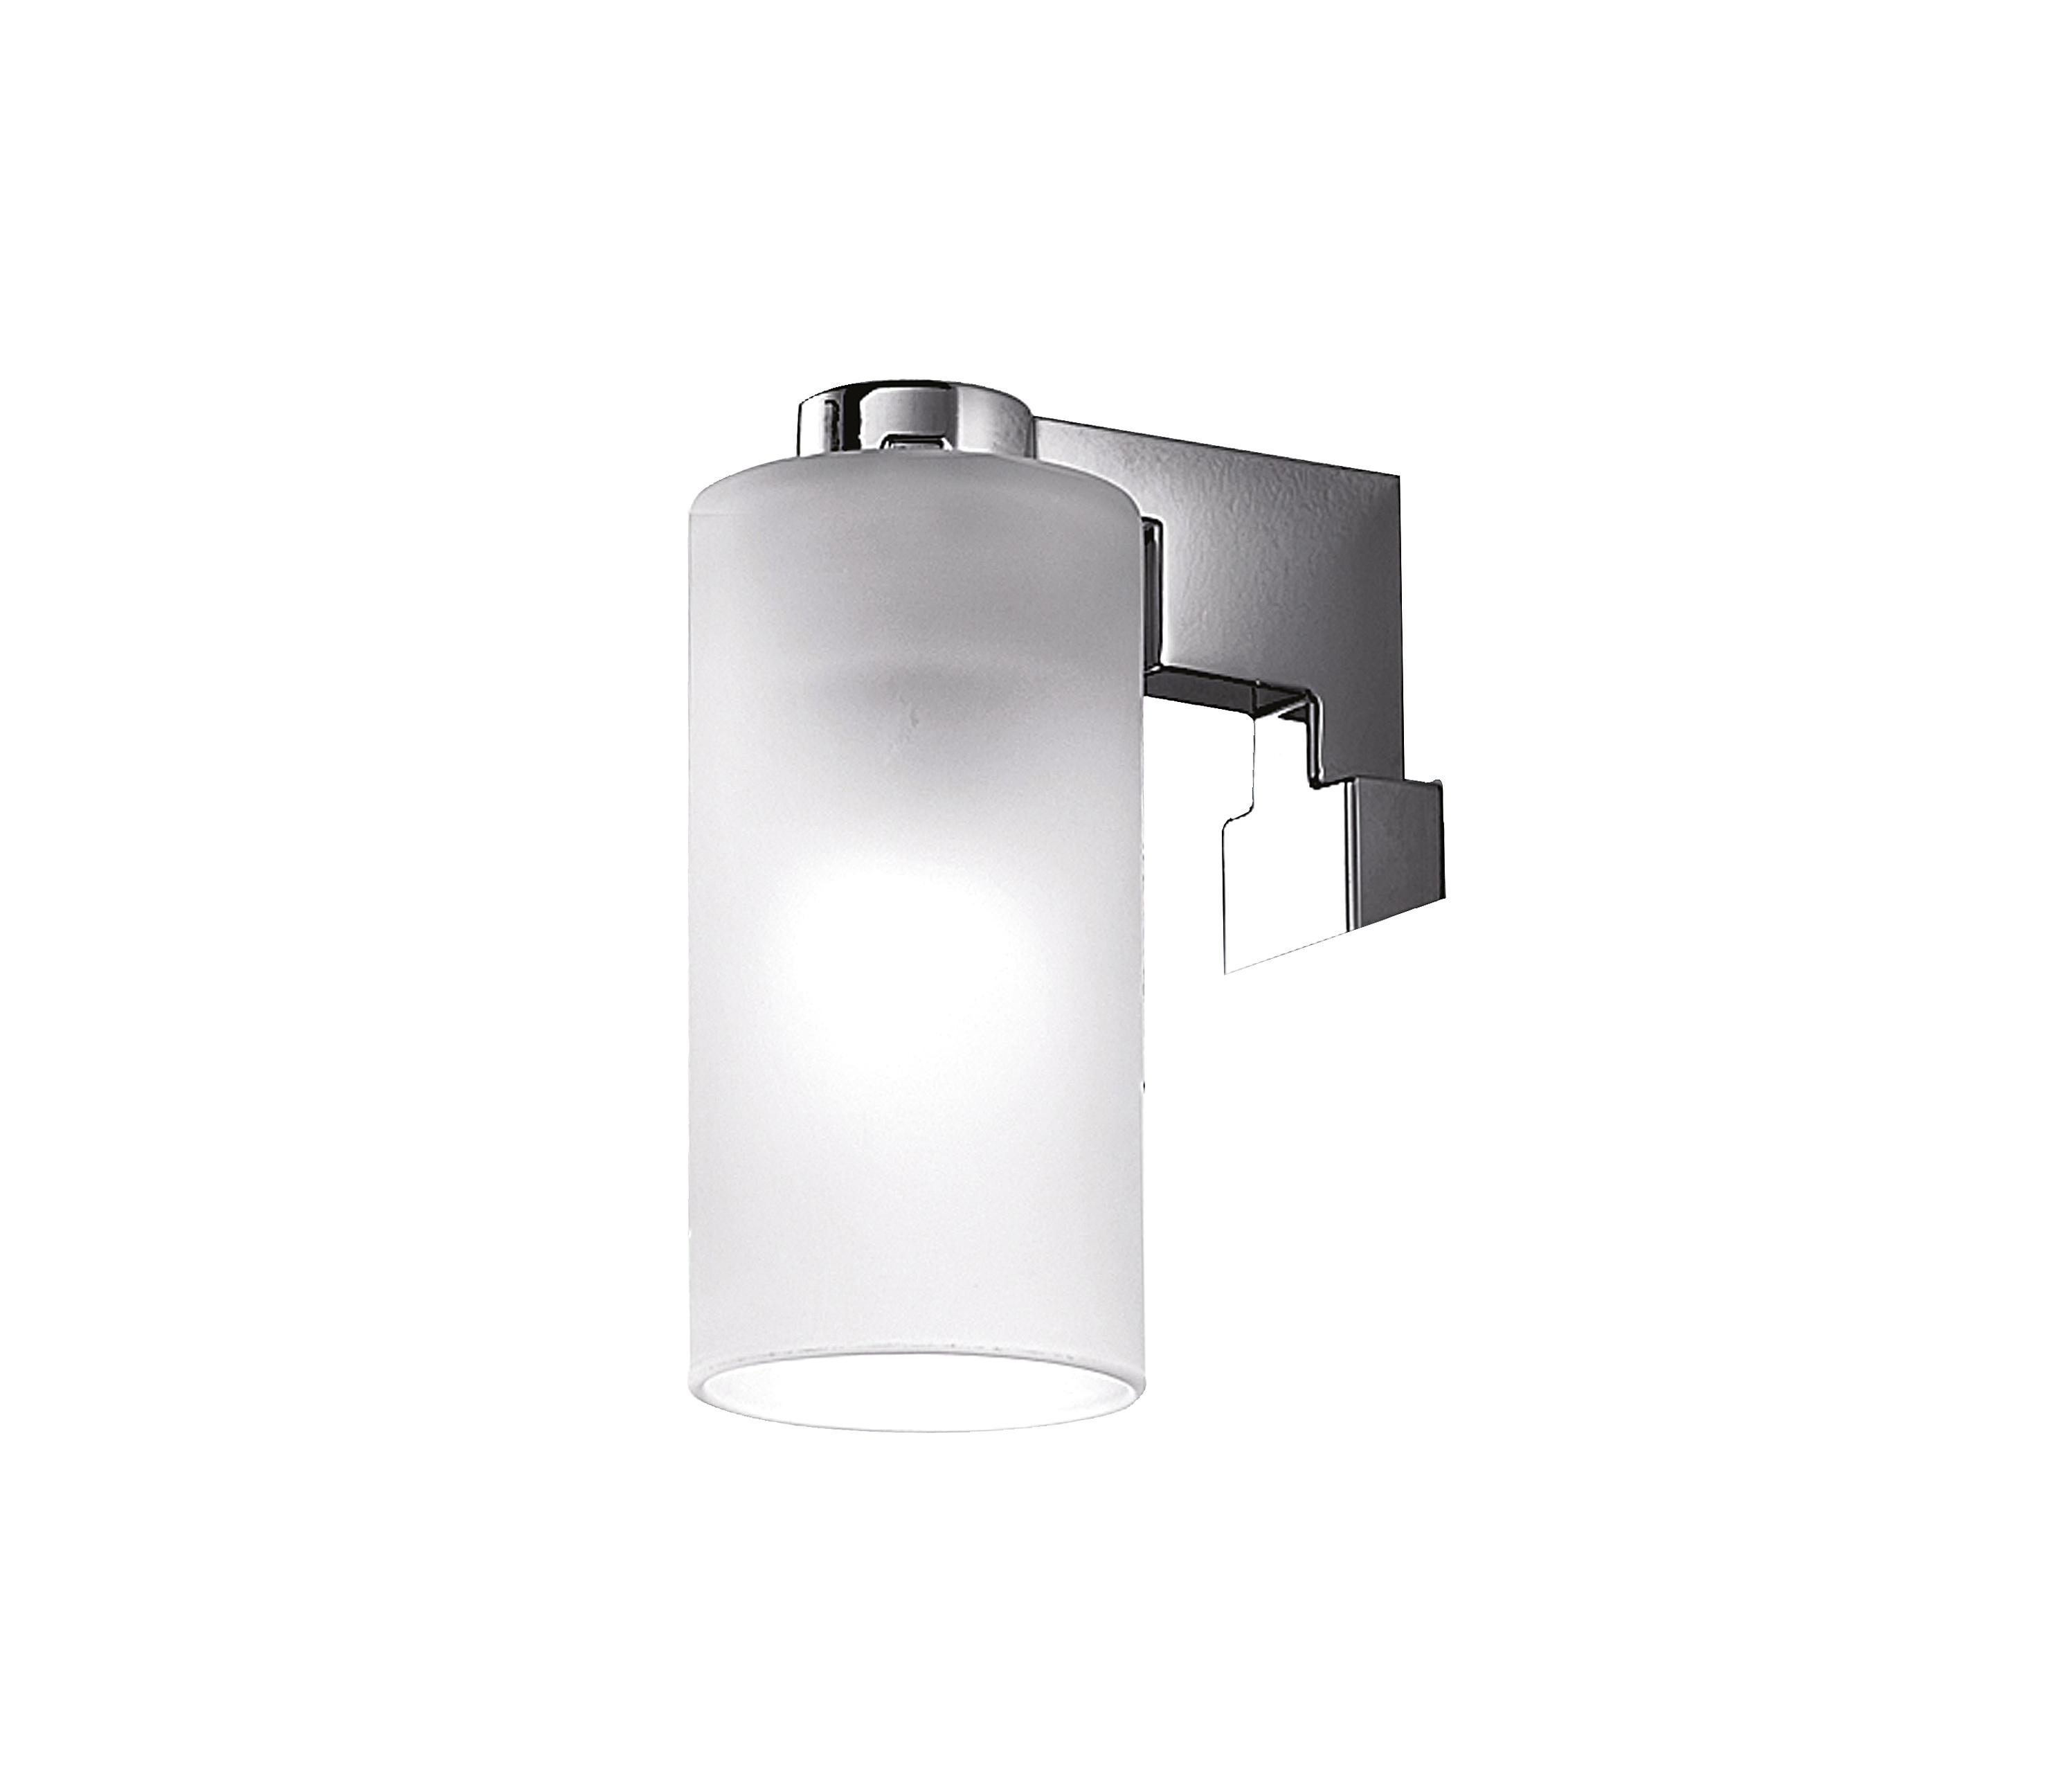 DIVO WALL-MOUNTED LAMP, BEHIND MIRROR INCANDESCENT LAMP INCLUDED, DIFFUSER IN SATINED GLASS - Wall..